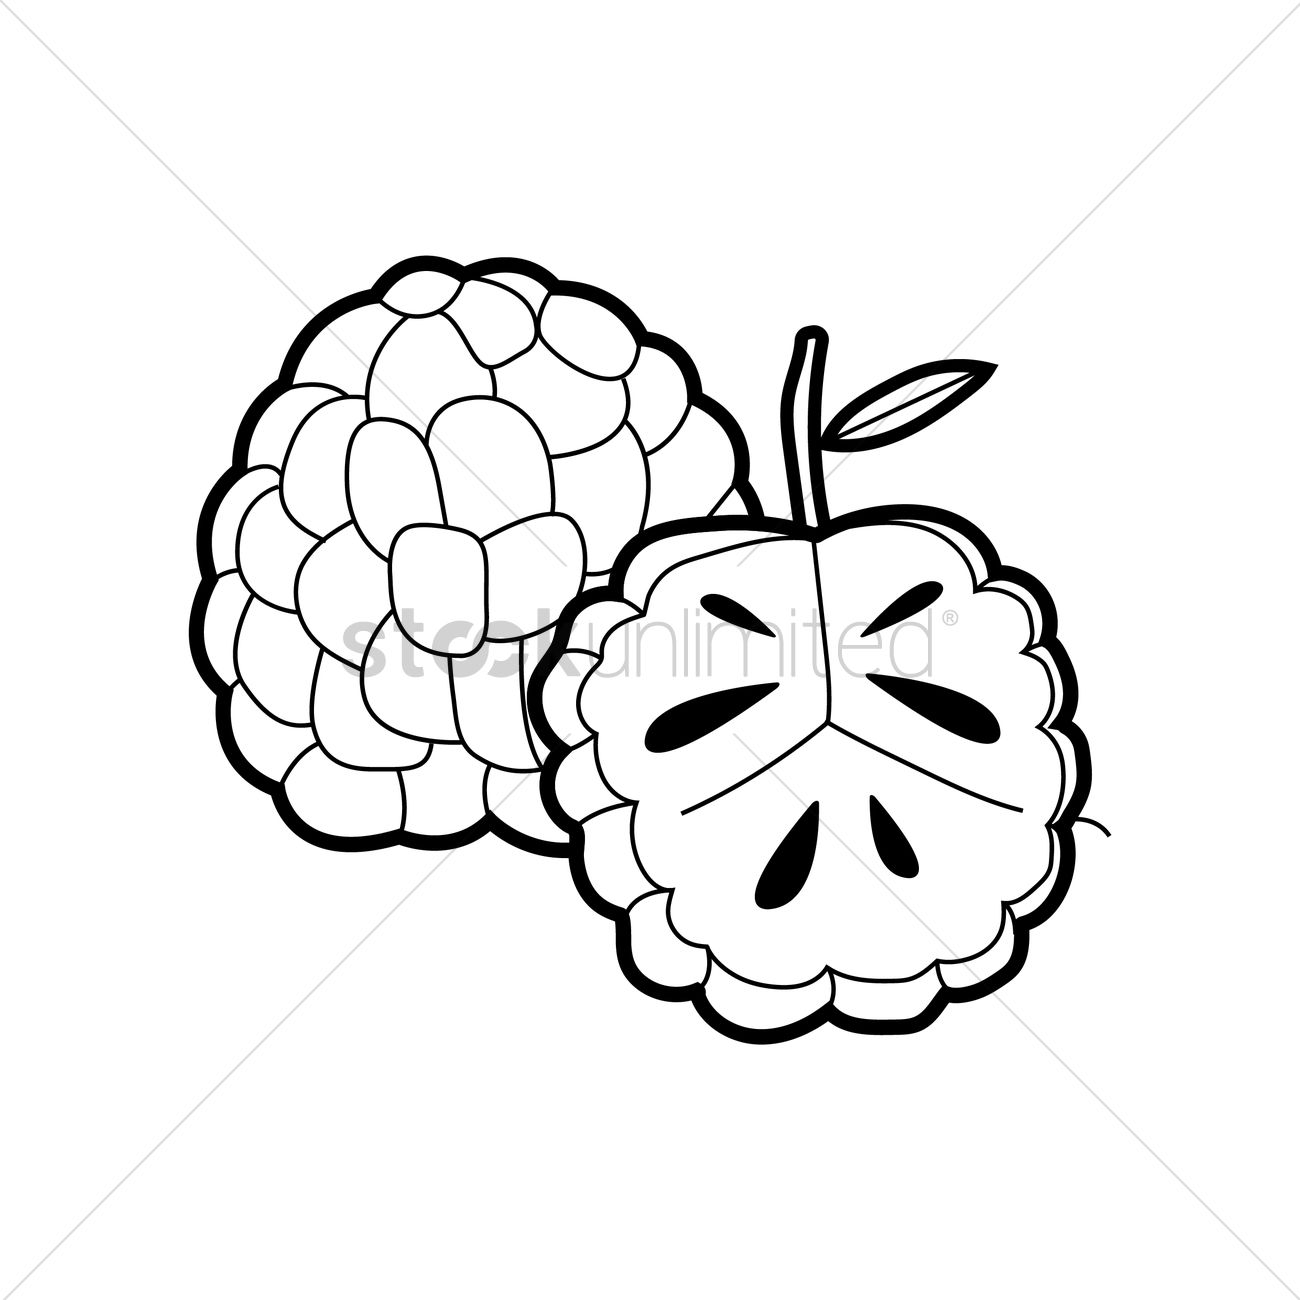 Custard apple Vector Image - 1498849 | StockUnlimited